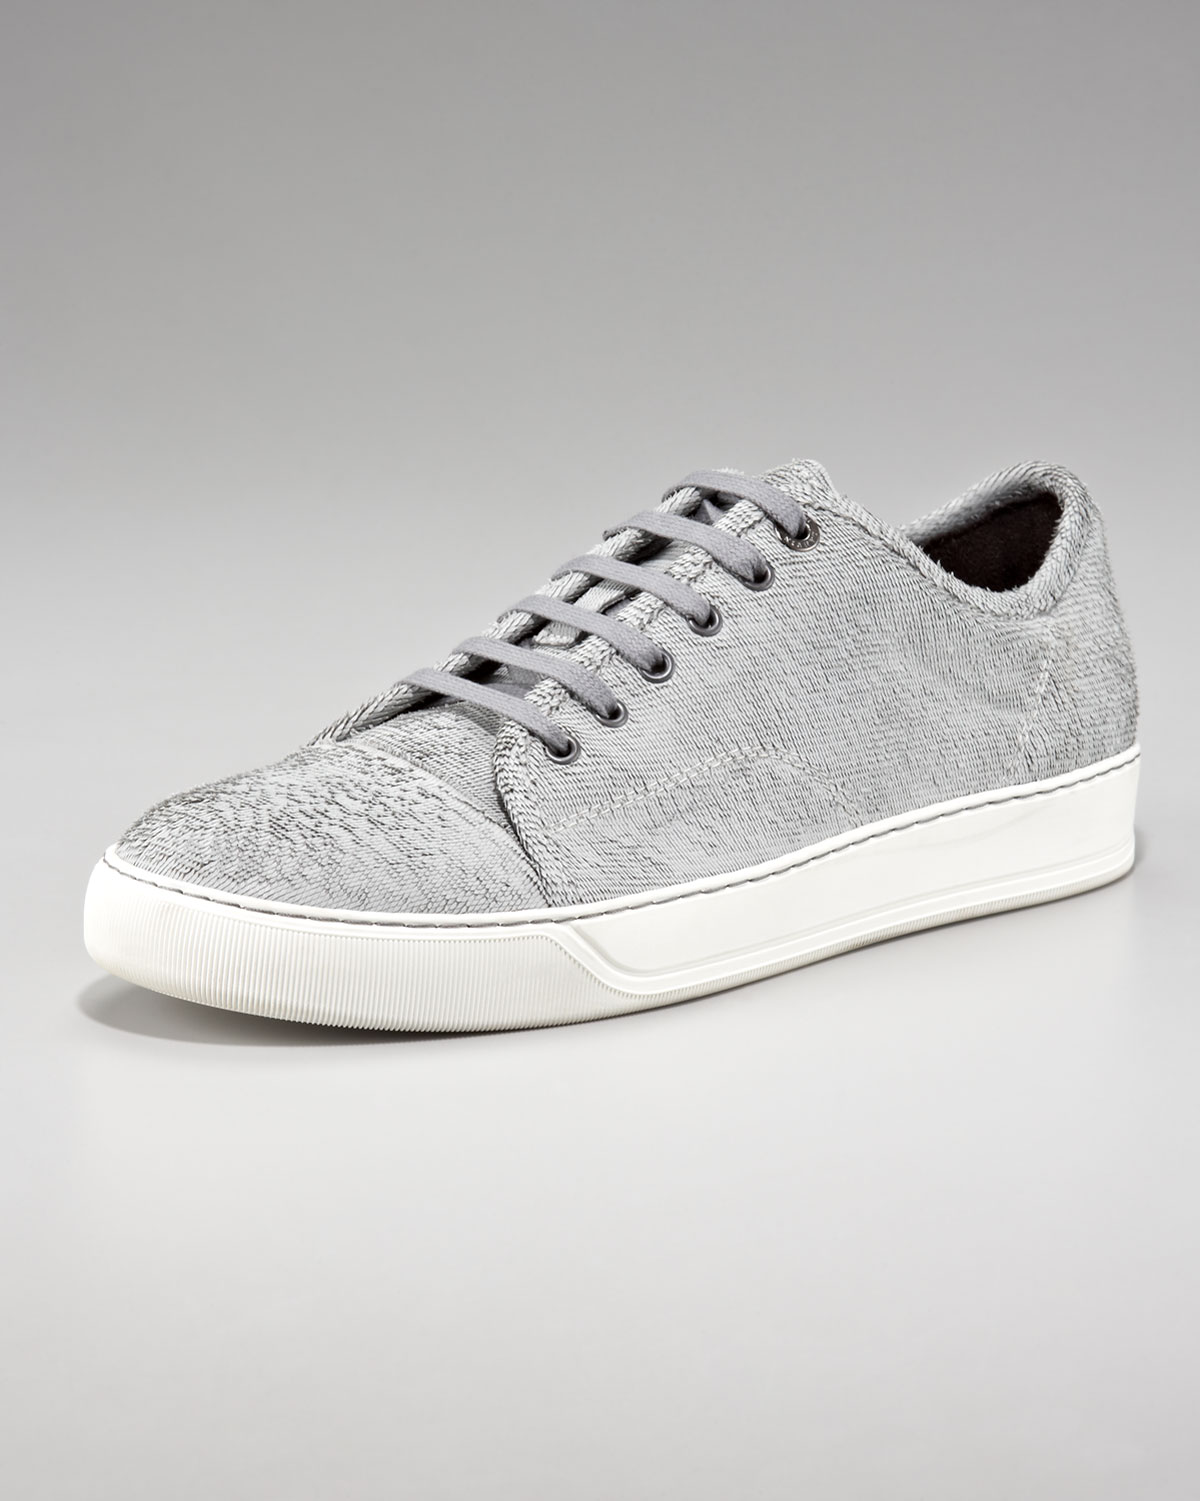 Lanvin In Lyst Gray Cut Sneaker For Men Laser 2IbWDeEH9Y